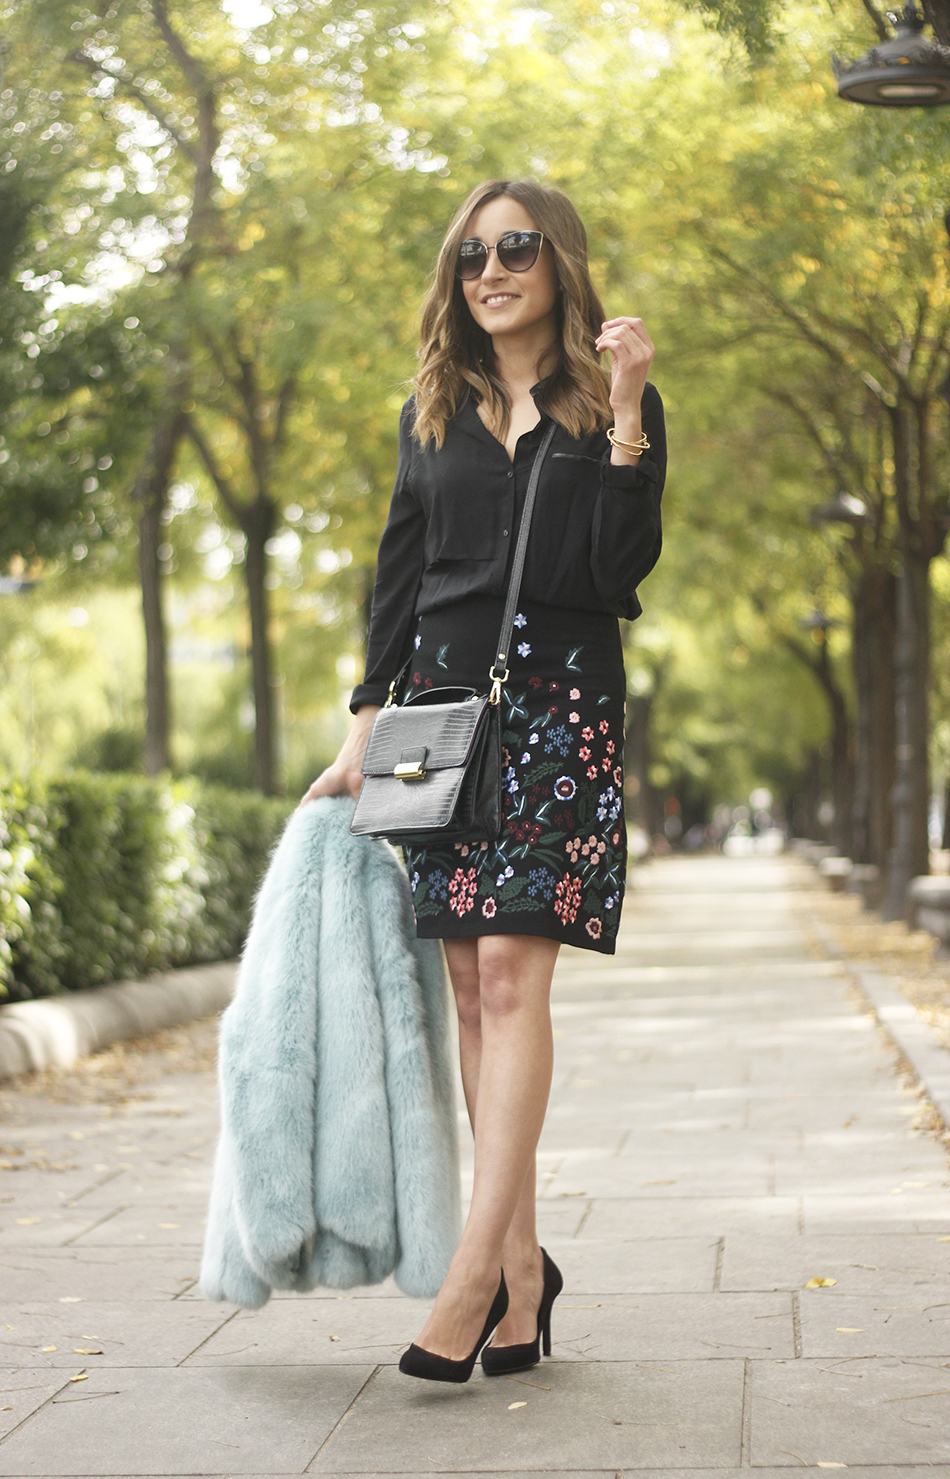 black skirt with flowers outfit20